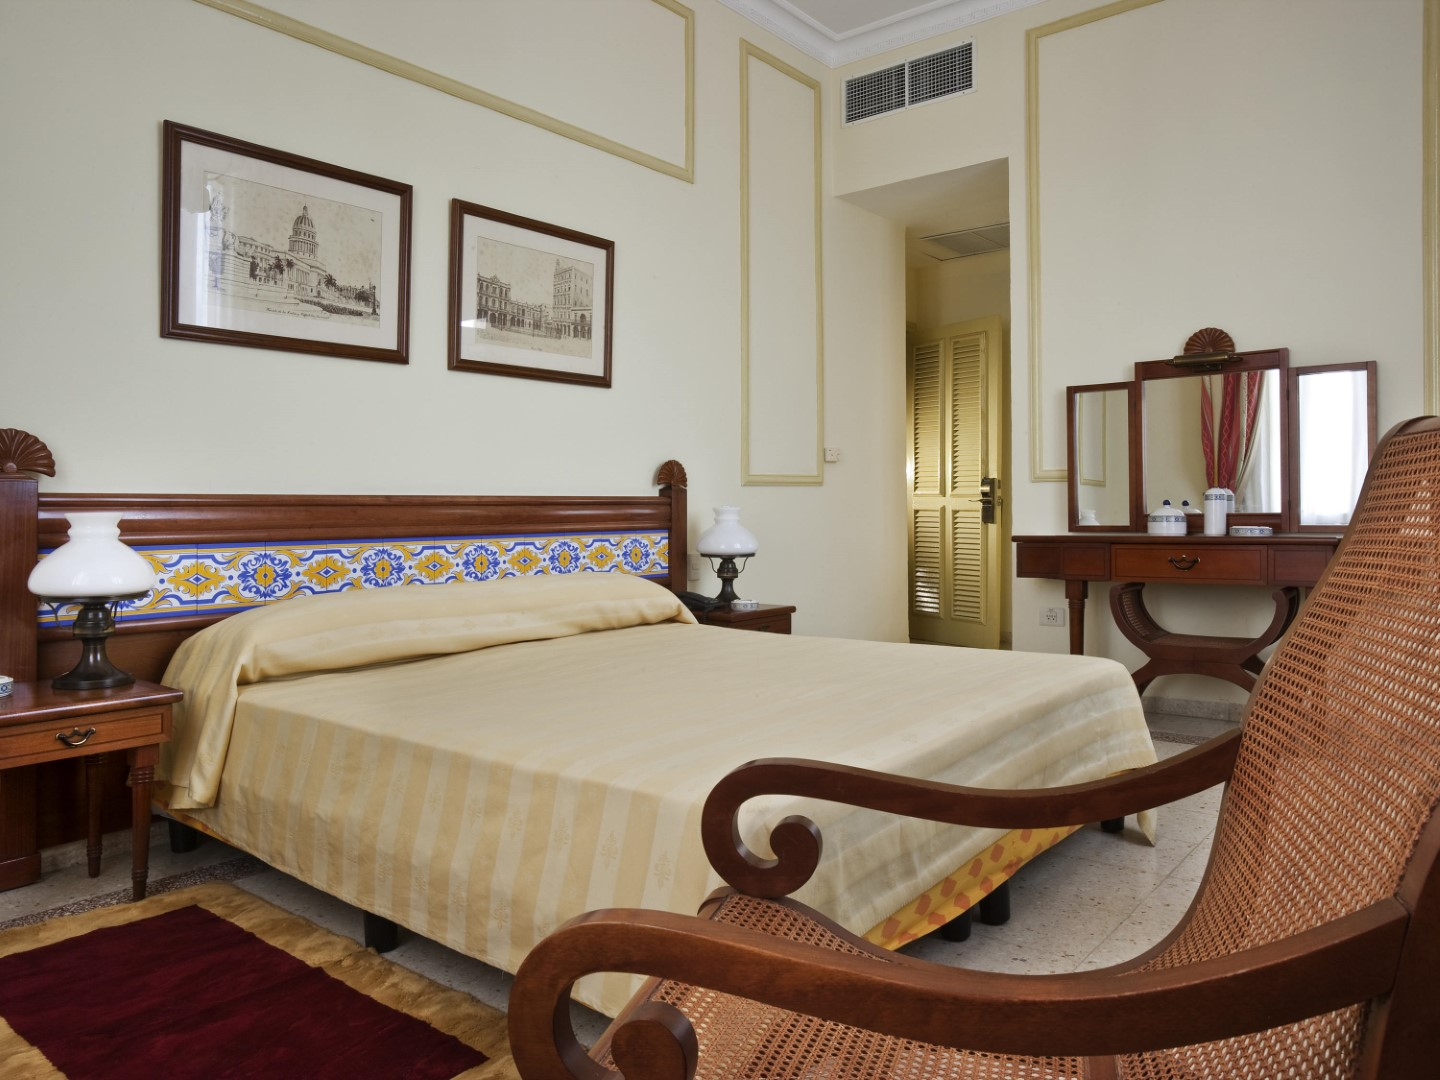 Superipr, double room at the Hotel Sevilla in Old Havana, Cuba